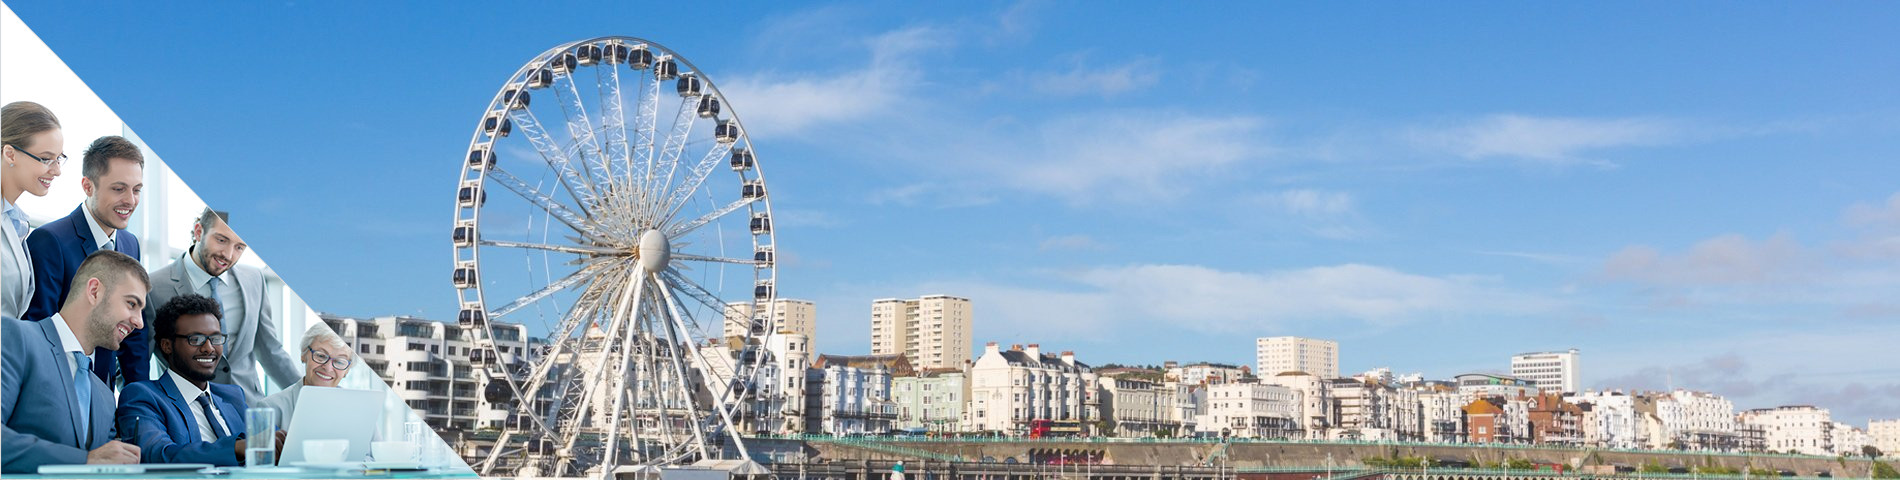 Brighton - Business Gruppe